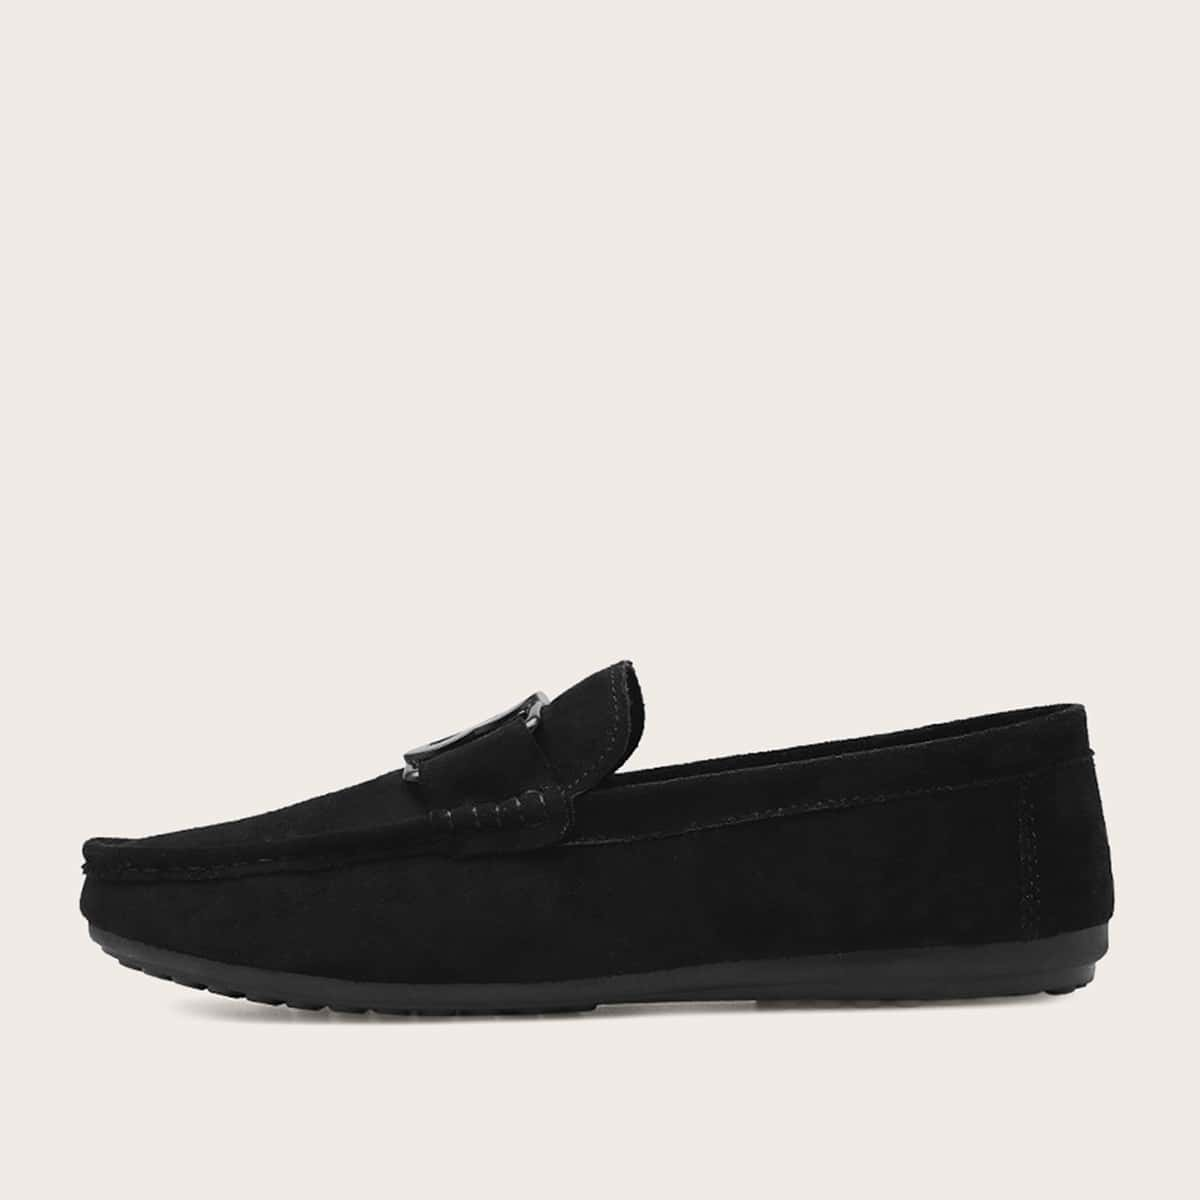 SHEIN / Men Letter Decor Suede Loafers